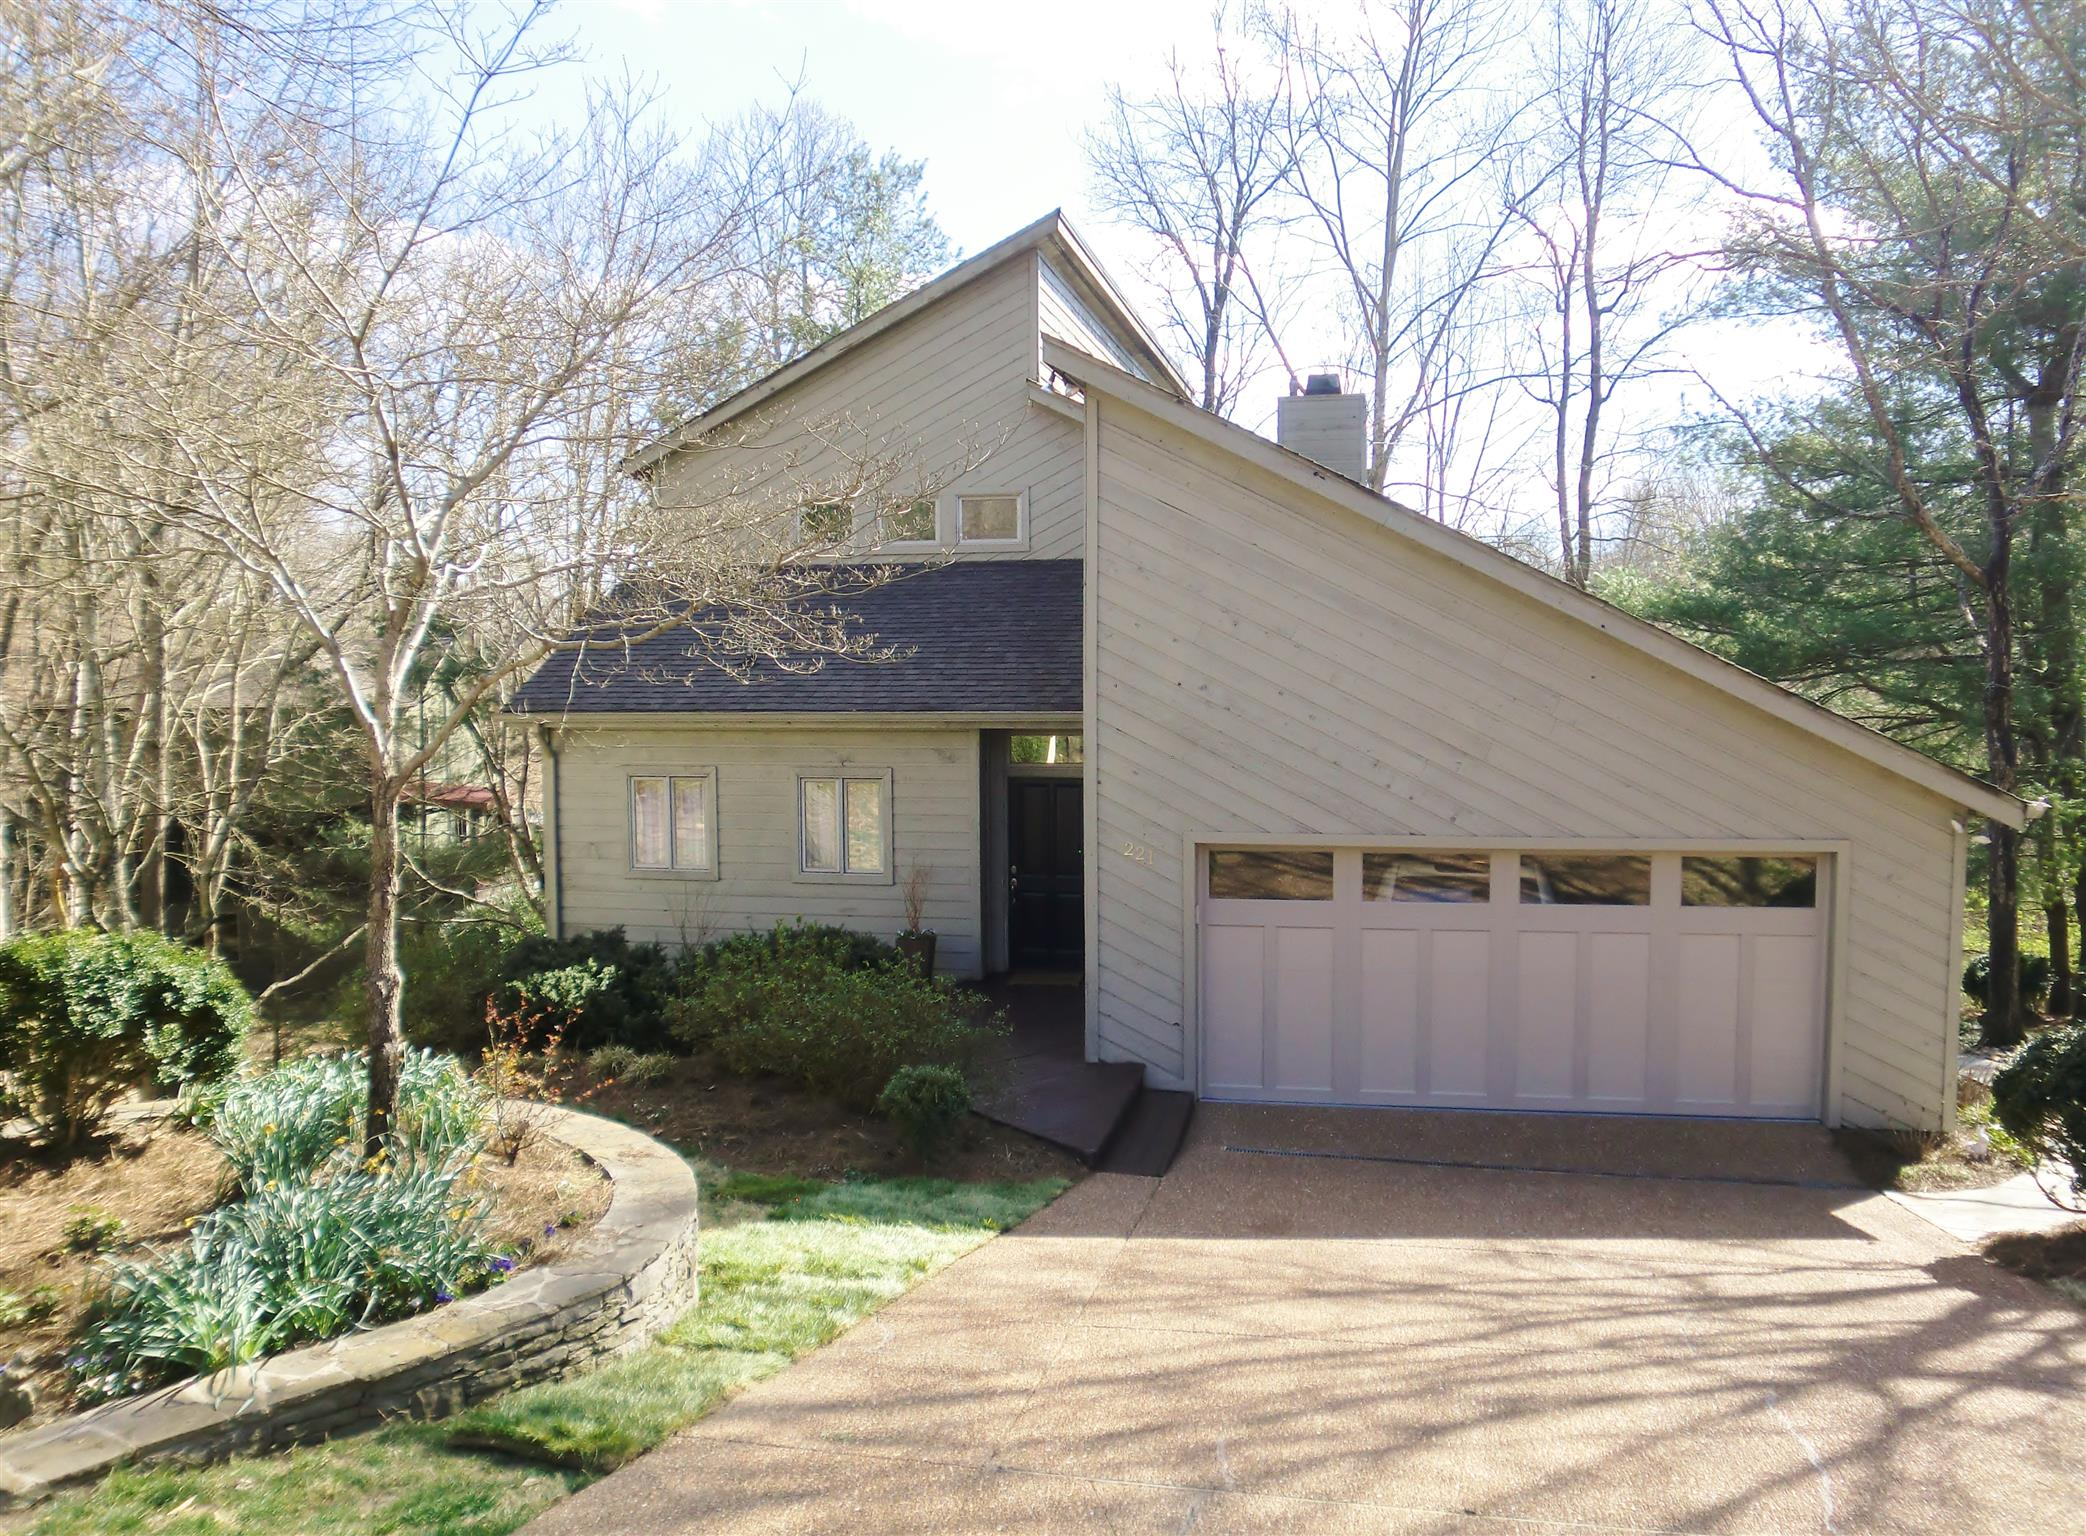 221 Harpeth Wood Dr, Bellevue in Davidson County County, TN 37221 Home for Sale